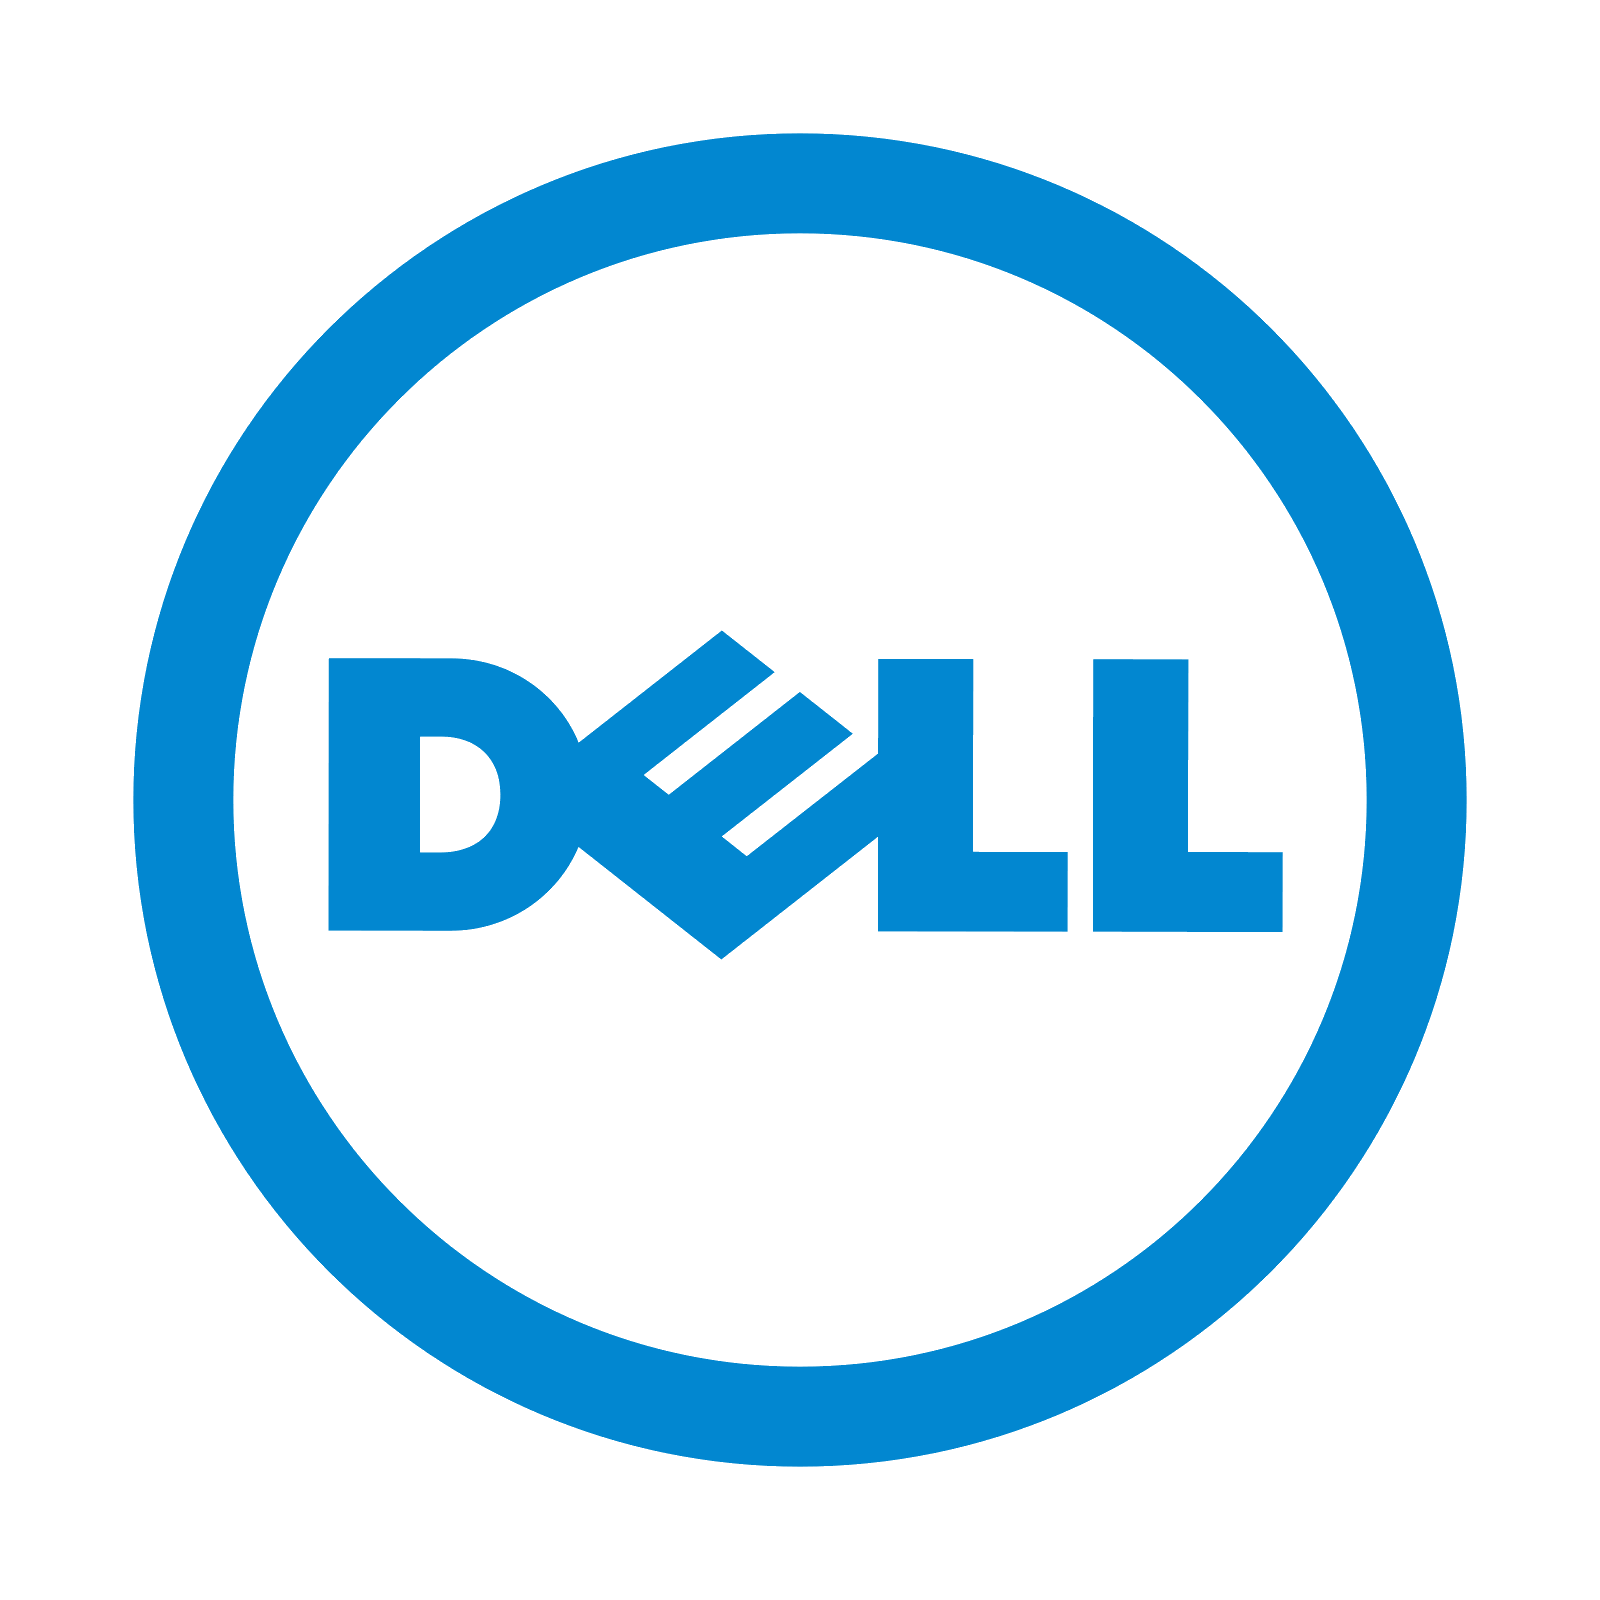 dell-icon-png-50-px-dell-png-1600_1600.png